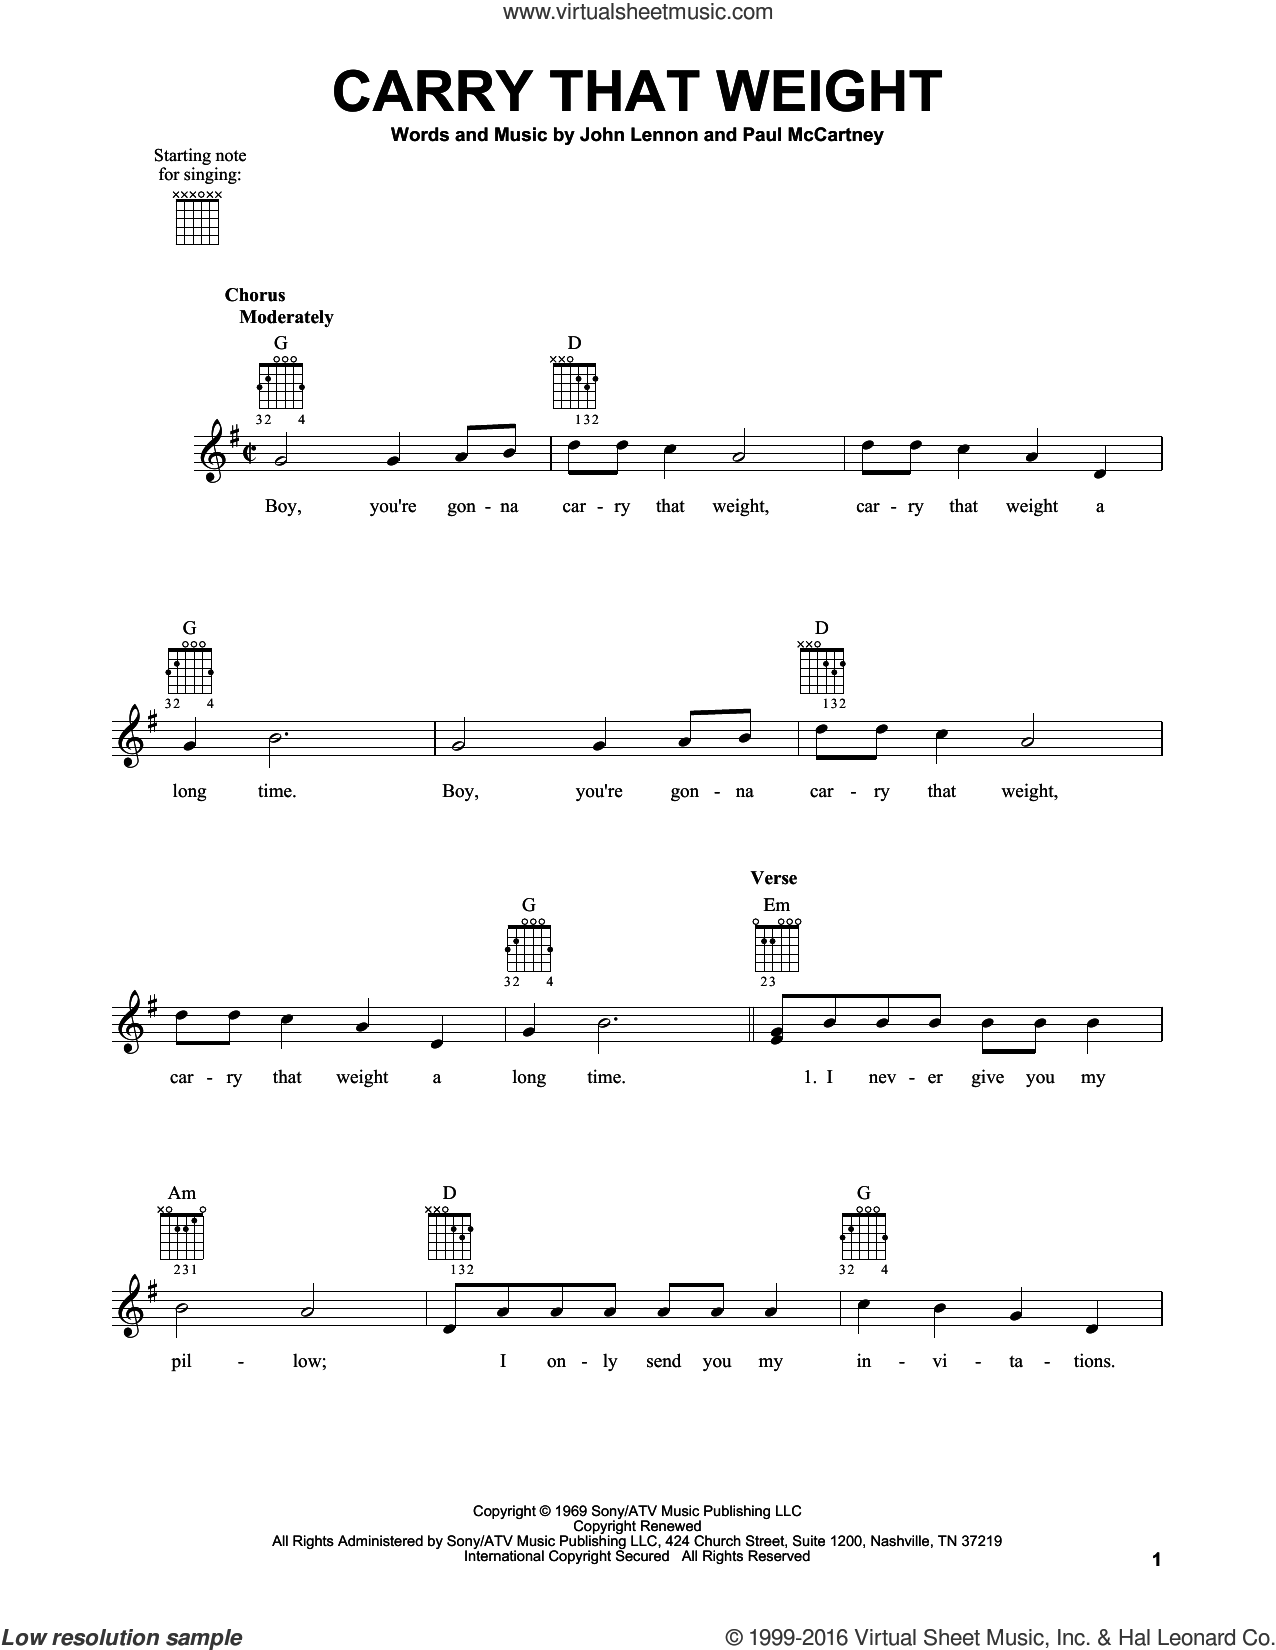 Carry That Weight sheet music for guitar solo (chords) by The Beatles, John Lennon and Paul McCartney, easy guitar (chords)